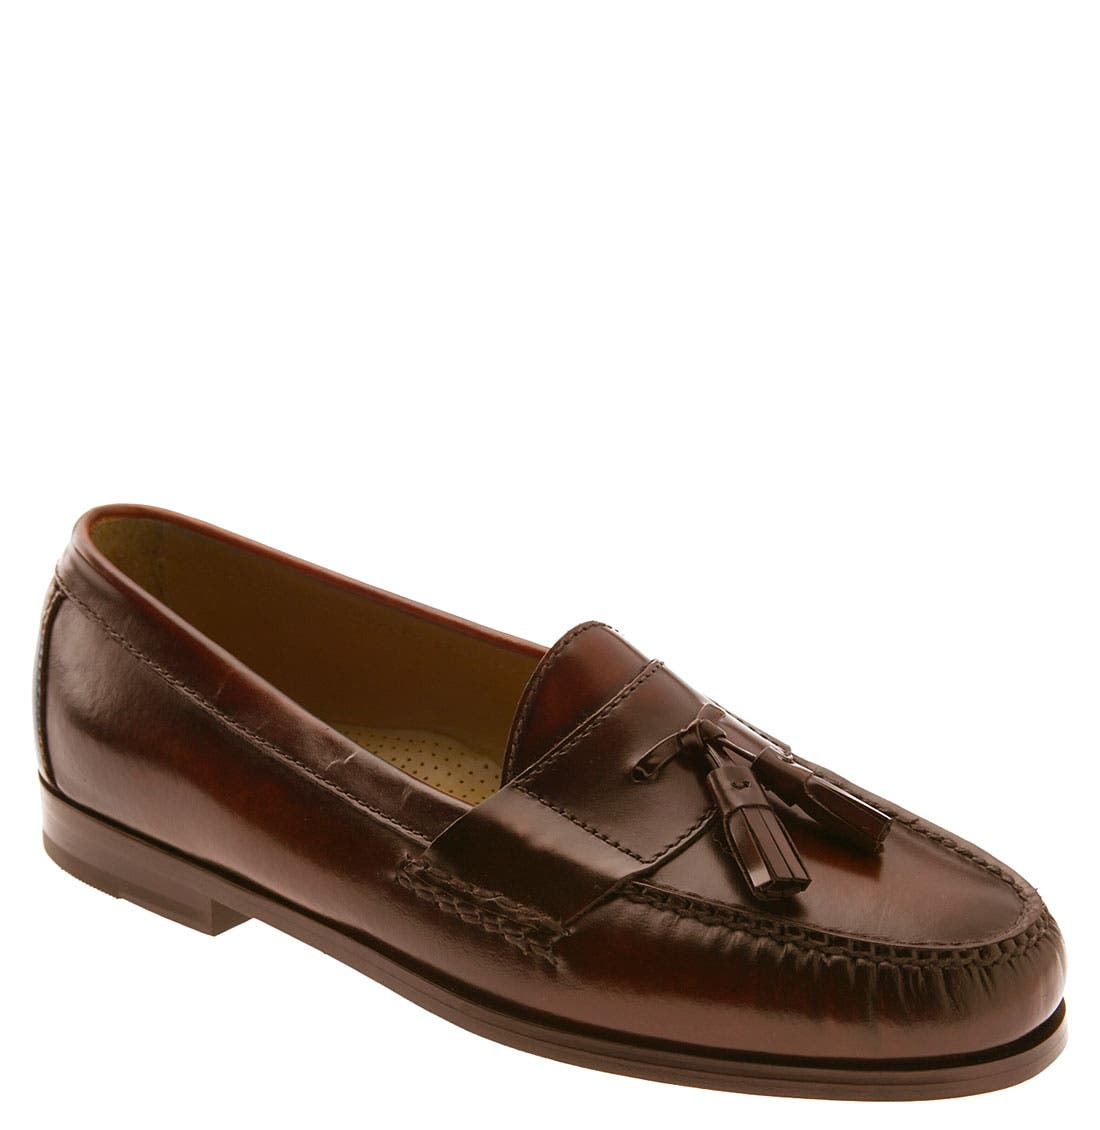 Alternate Image 1 Selected - Cole Haan 'Pinch' Tassel Loafer (Men)